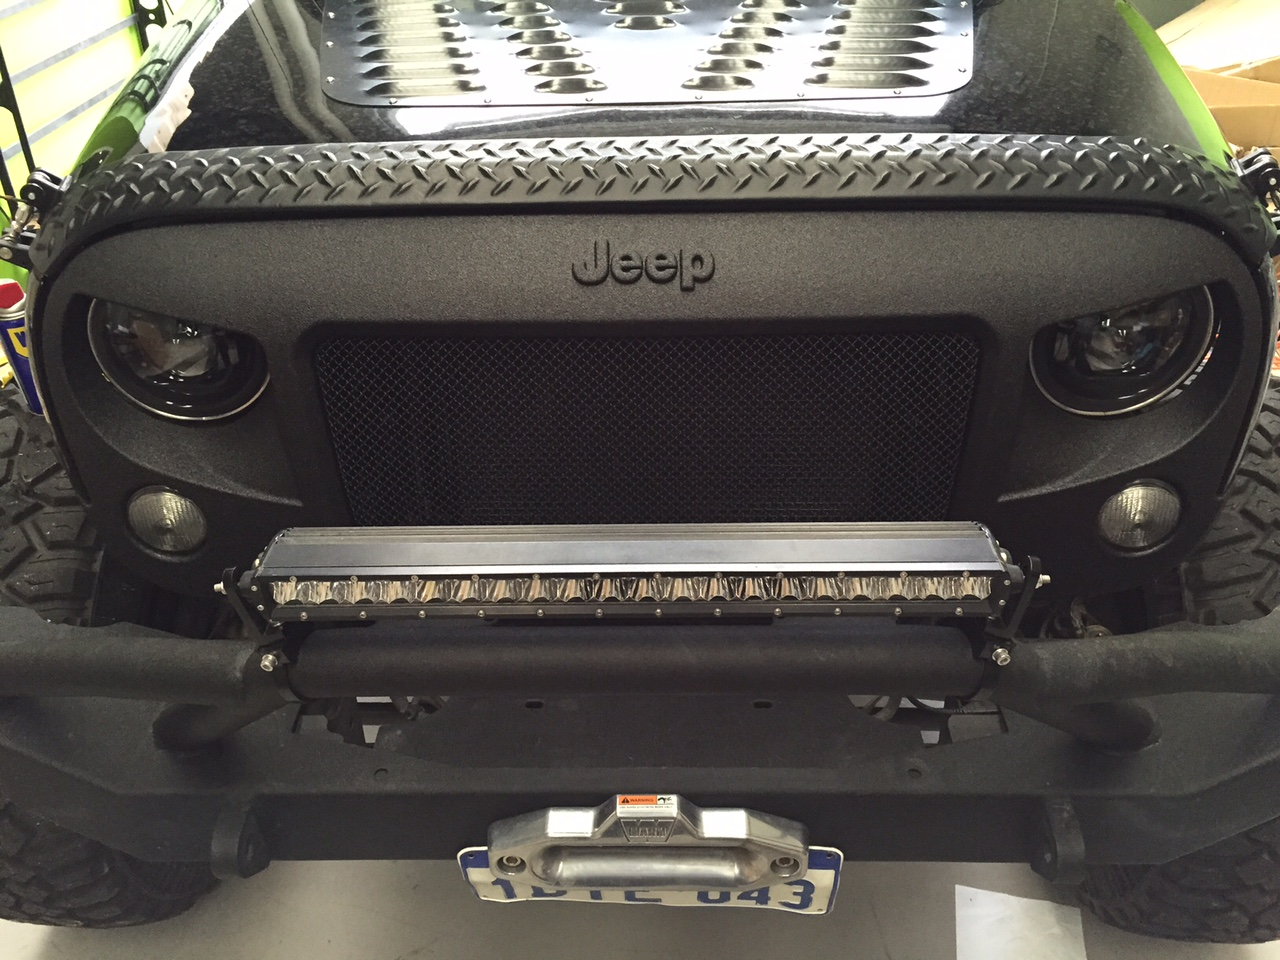 Jeep Wrangler Fenders >> BLACK Signature Ripple Coating for Jeep Wrangler Grill, ANGRY, HIGHFLOW, WARRIOR & MONSTER GRILL ...